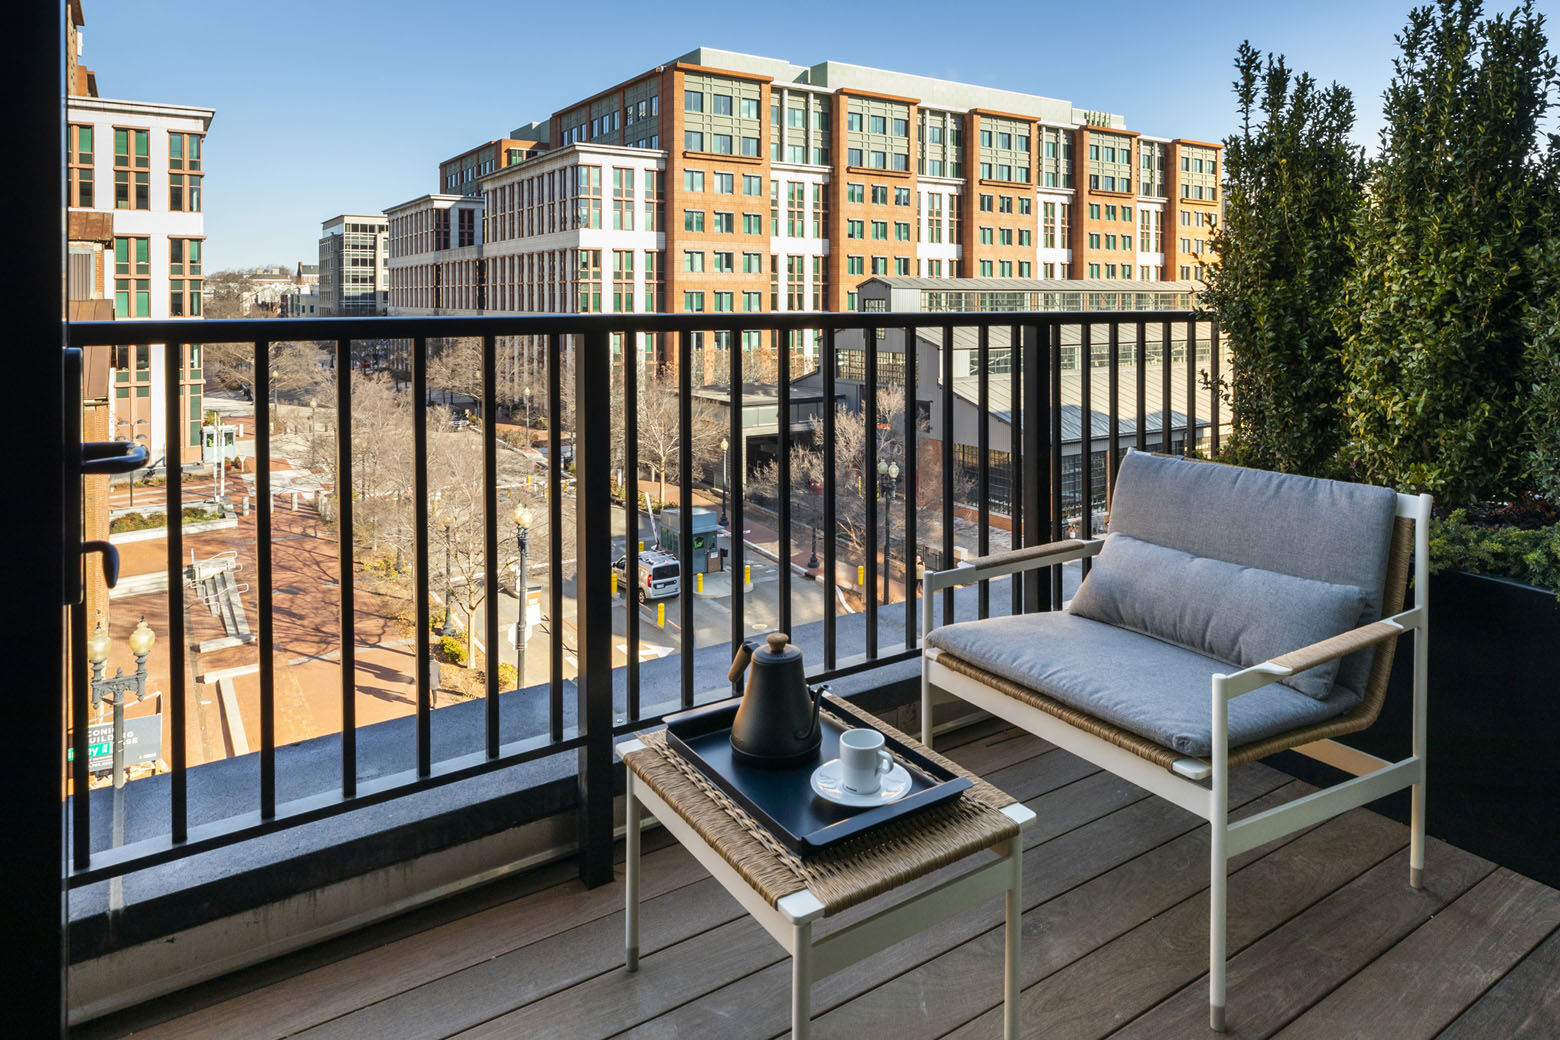 The hotel, called Thompson Washington D.C., occupies a newly built 11-story building at 221 Tingey Street, S.E. Some of the rooms have balconies.